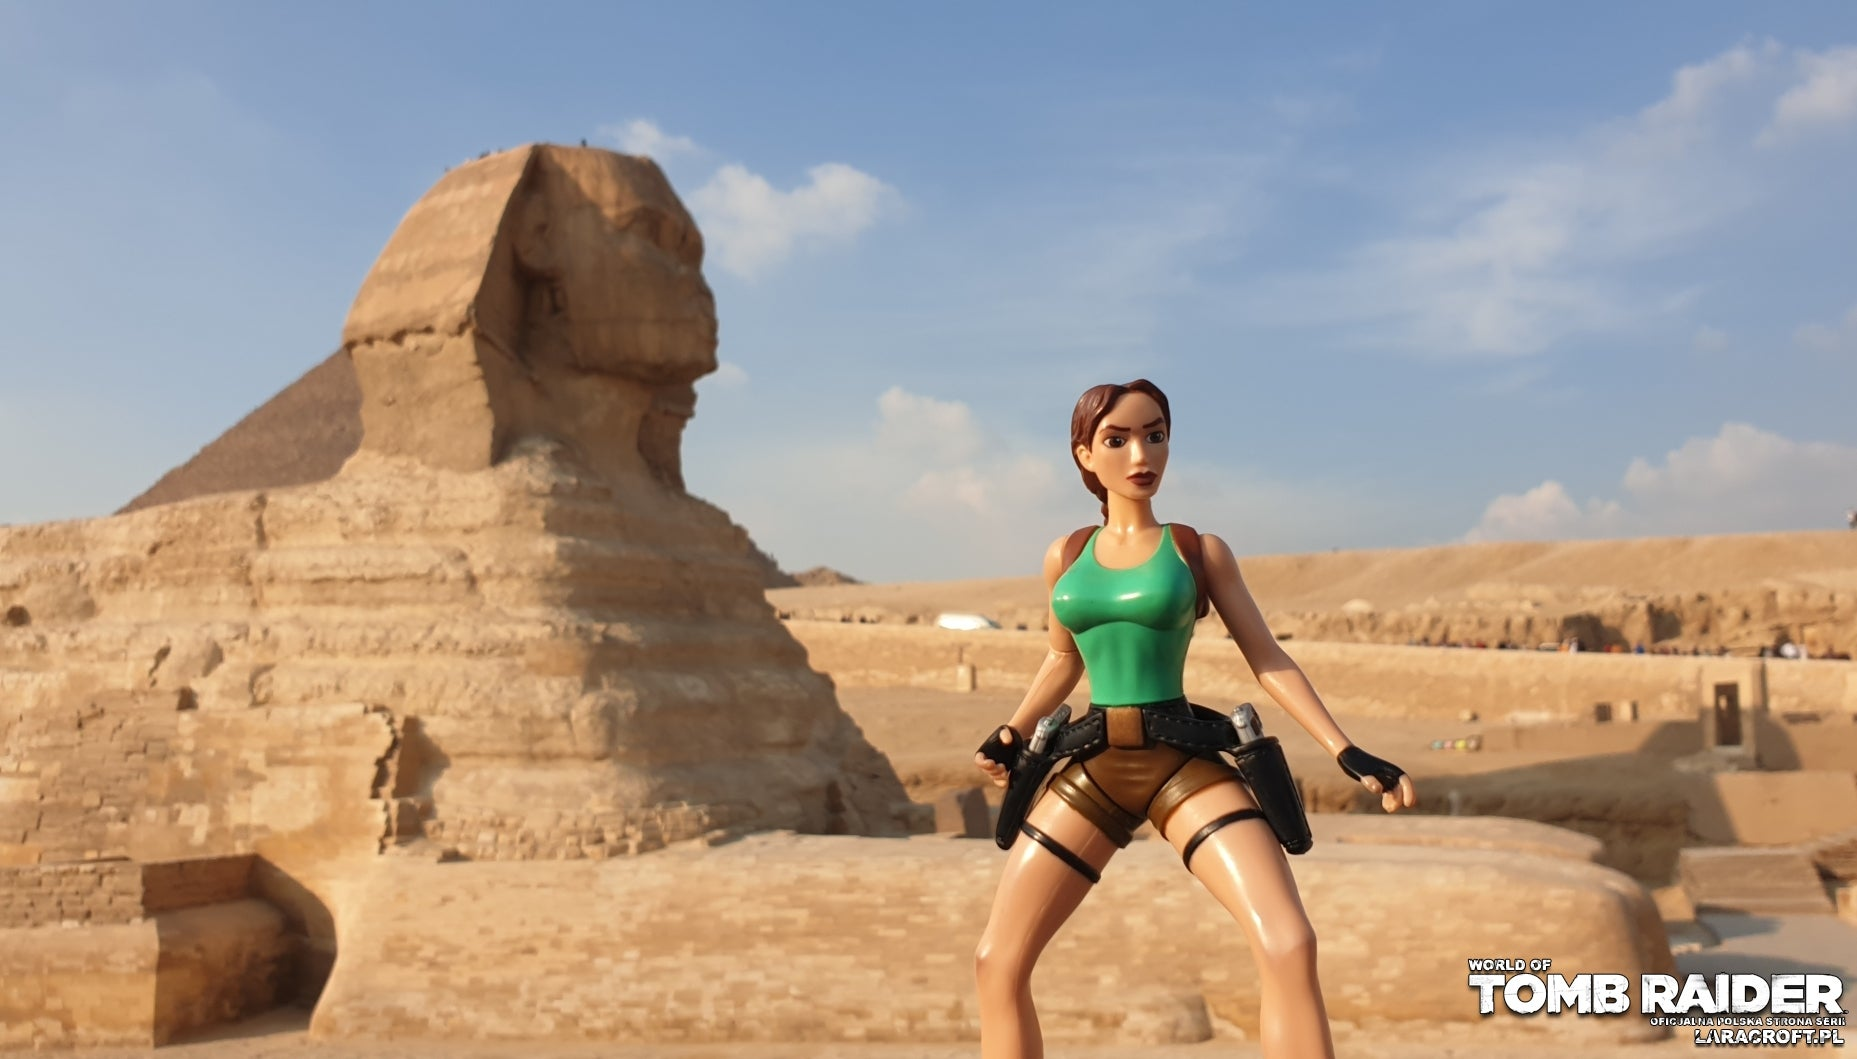 A photograph of a Lara Croft figure in front of the Sphinx in Egypt